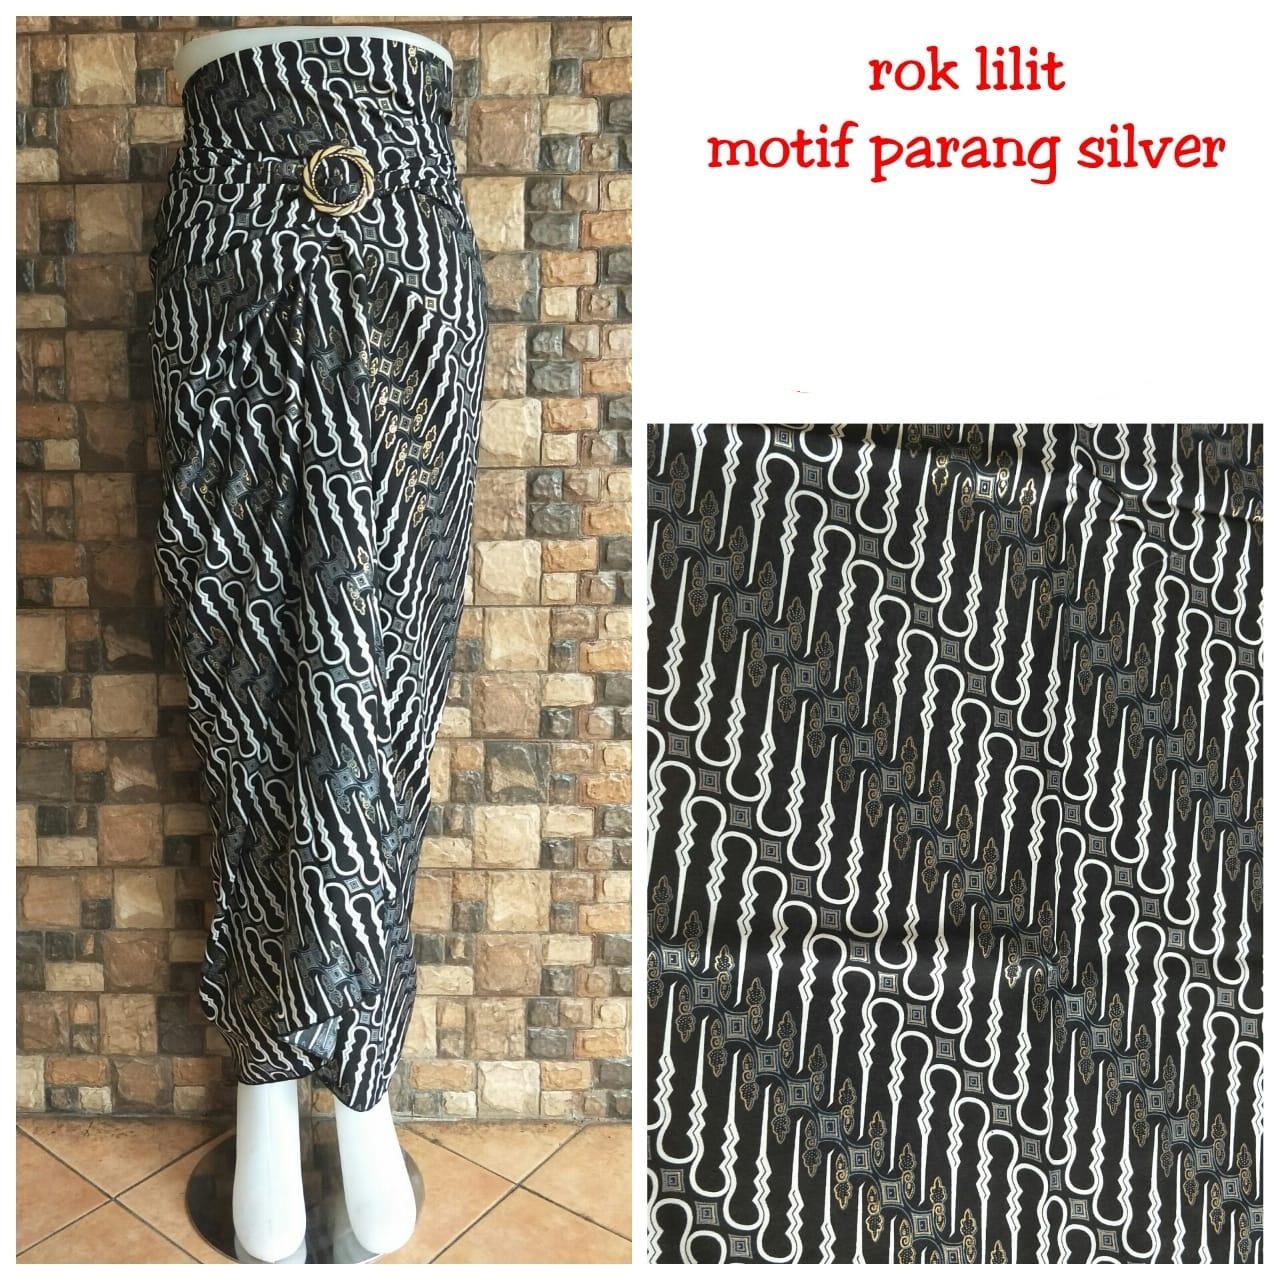 SB COLLECTION ROK LILIT BATIK BLACKGOLD HITAM ✓